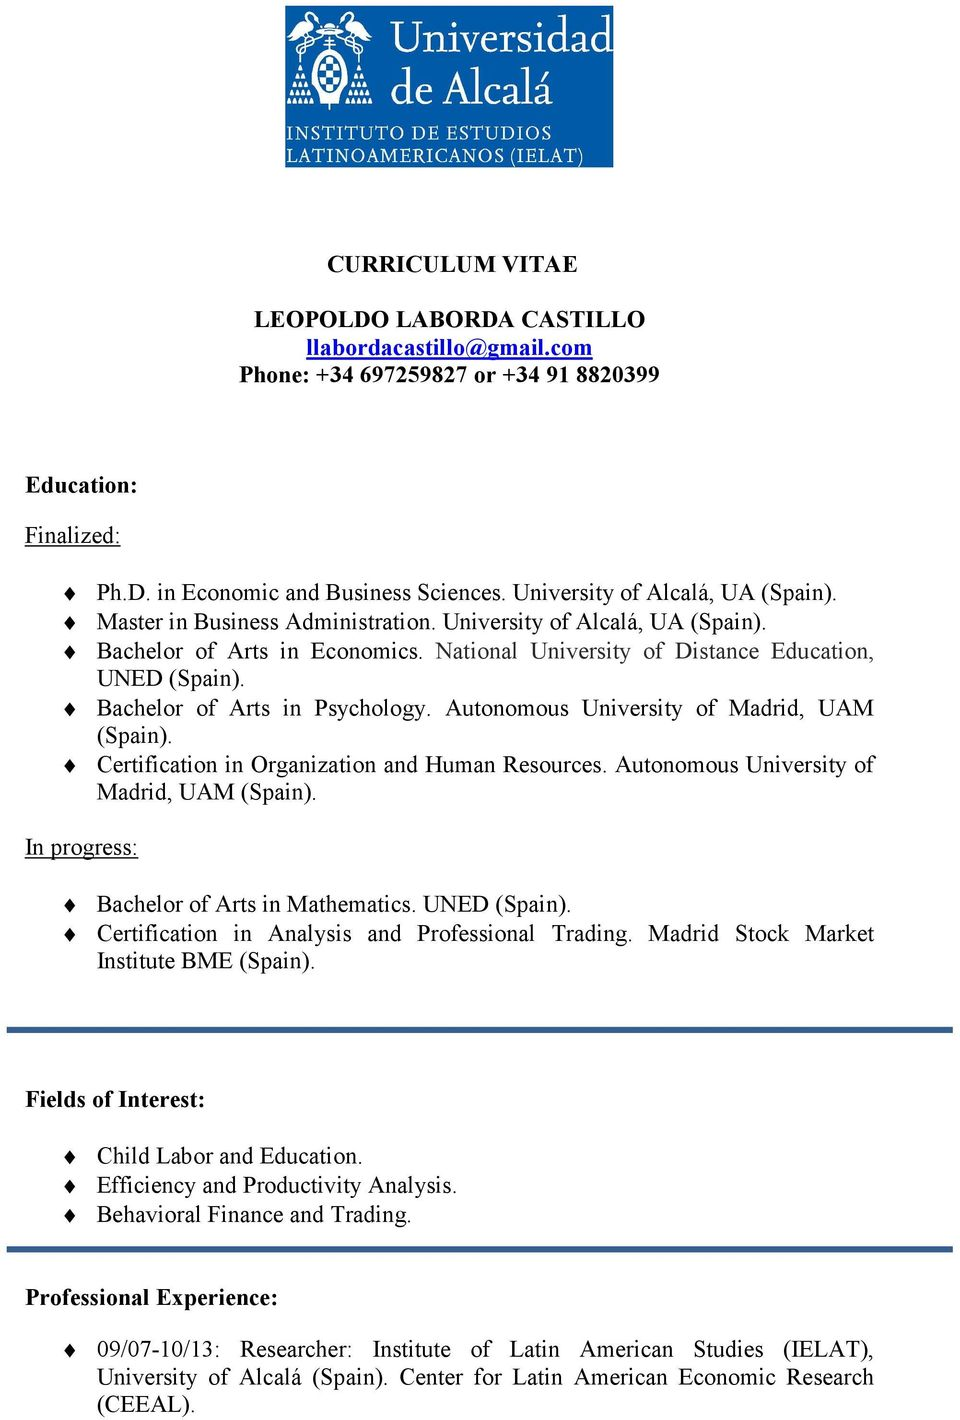 Bachelor of Arts in Psychology. Autonomous University of Madrid, UAM (Spain). Certification in Organization and Human Resources. Autonomous University of Madrid, UAM (Spain). In progress: Bachelor of Arts in Mathematics.